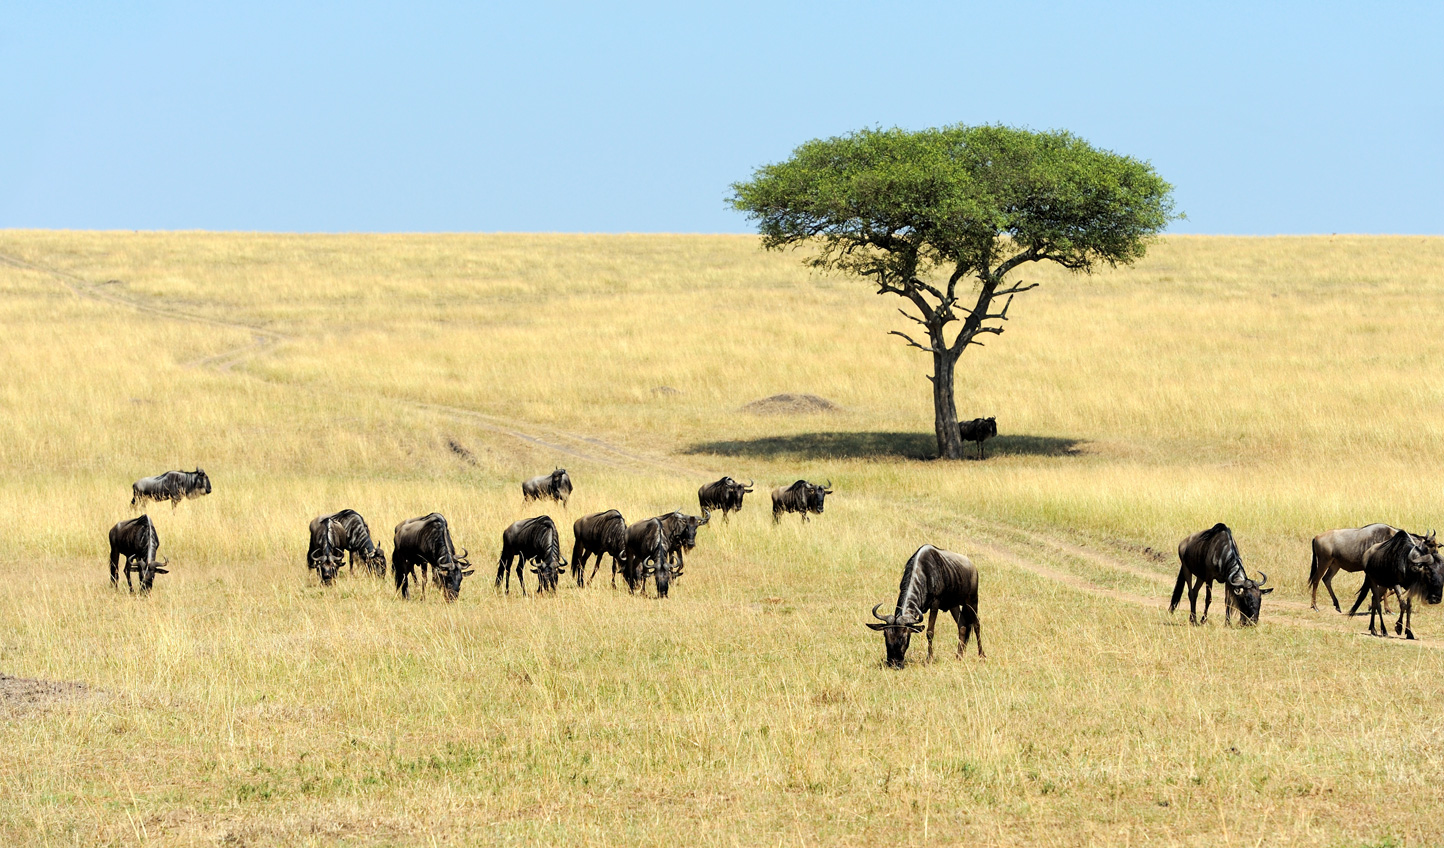 The famous Maasai Mara